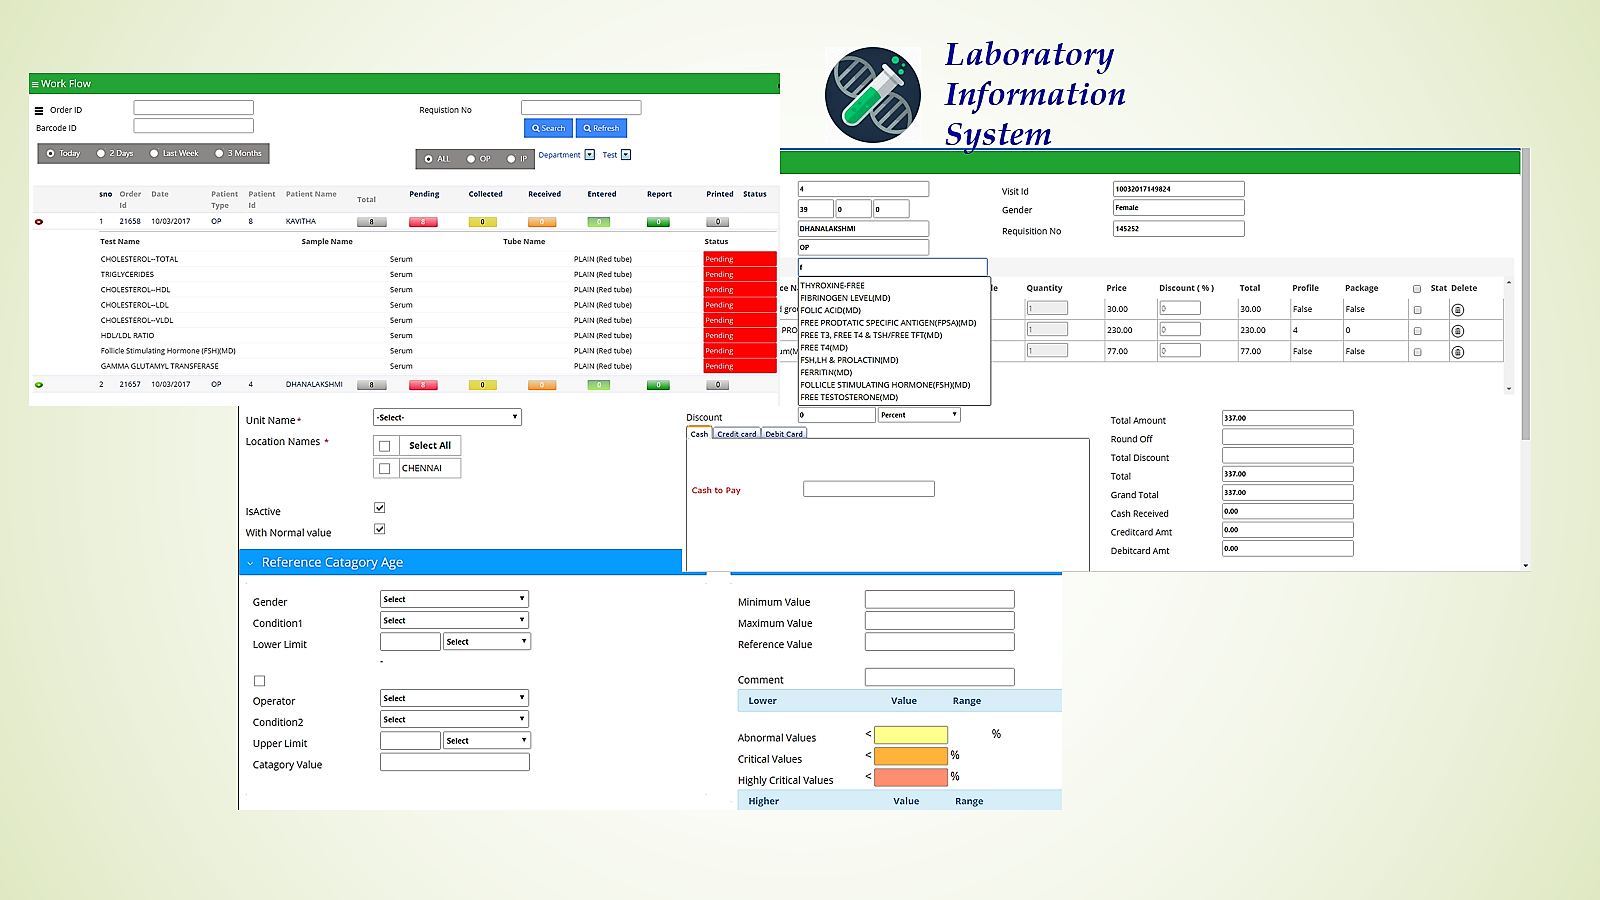 Workflow screen of laboratory information sysytem